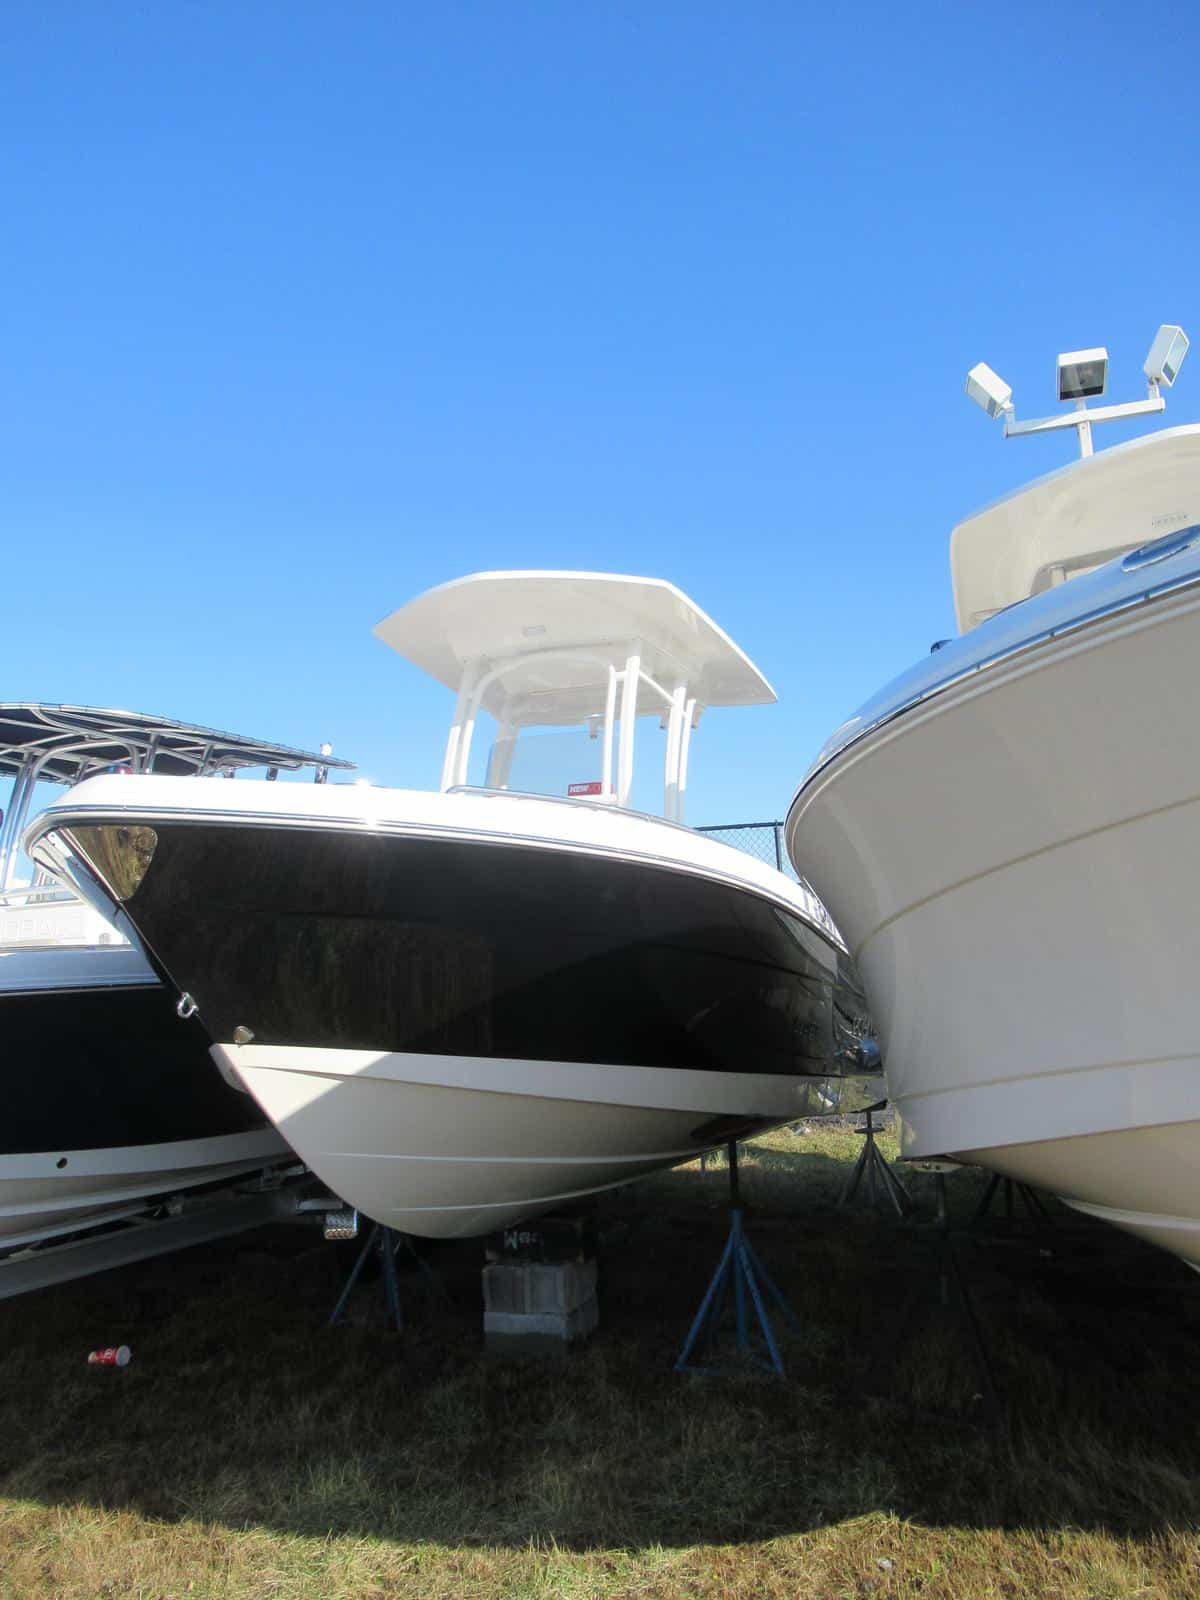 NEW 2018 Robalo R222EX Center Console - Long Island, NY Boat Dealer | Boat Sales & Rentals